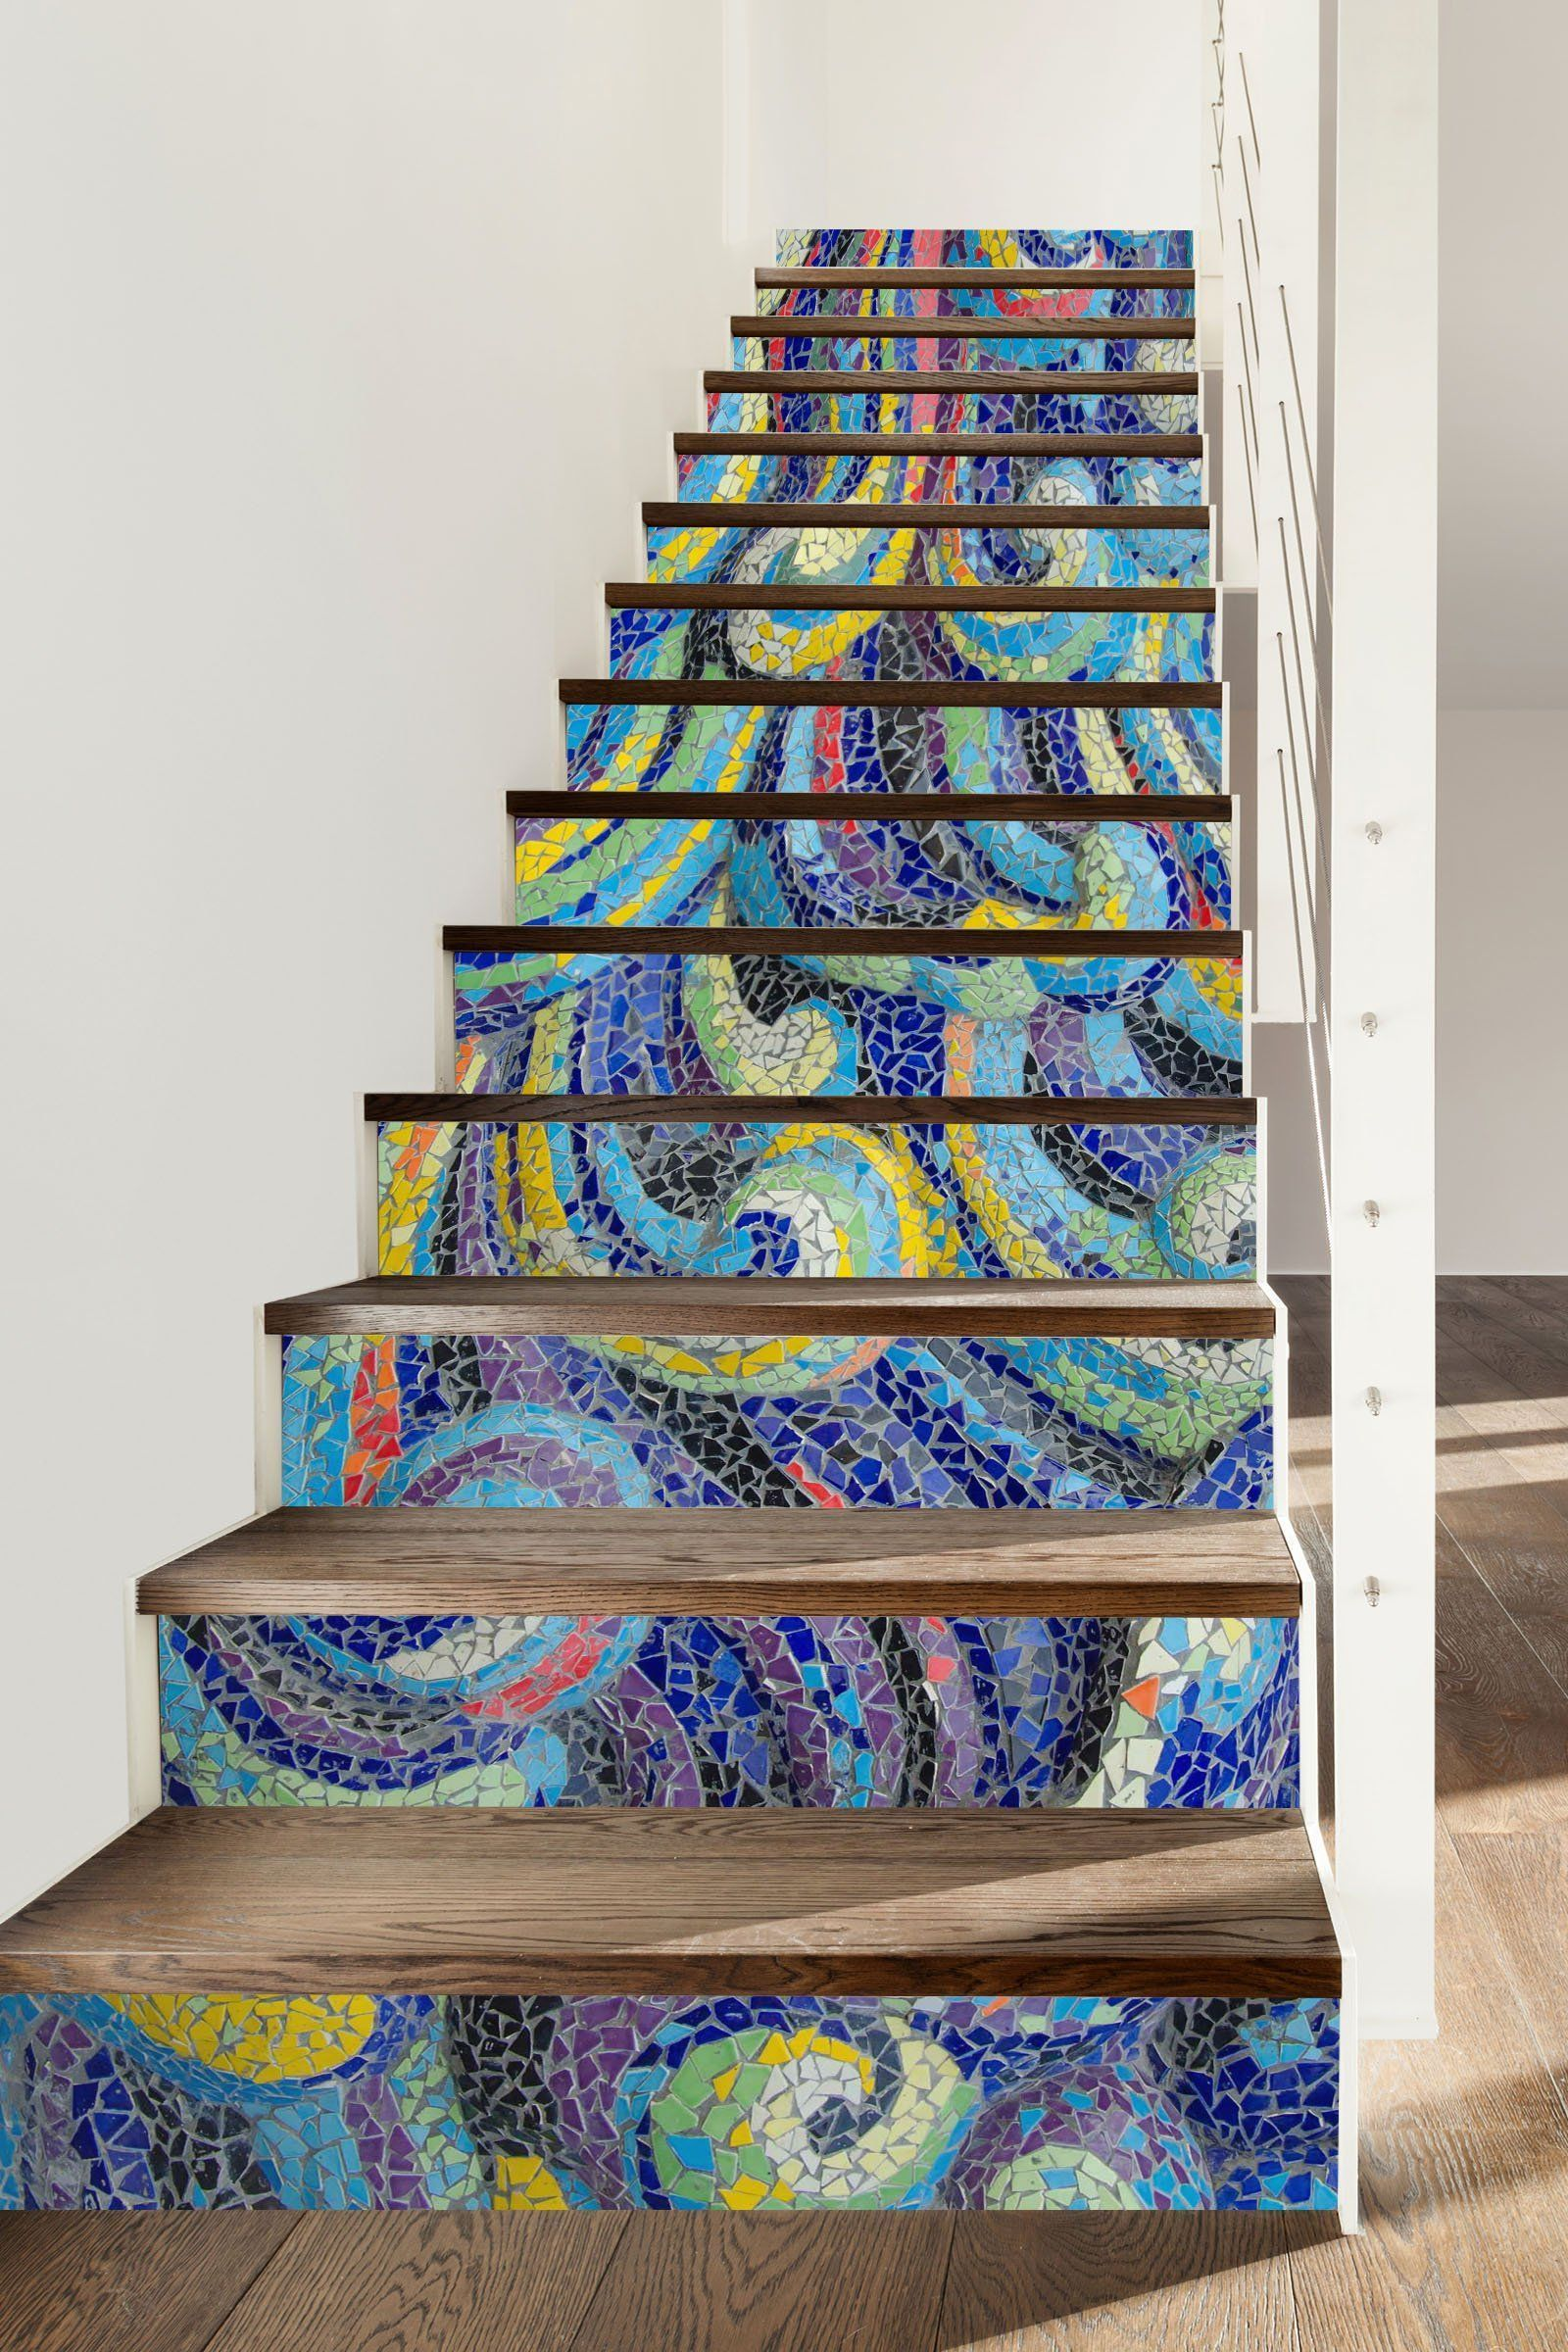 3D Art 7203 Stair Risers Wallpaper AJ Wallpaper